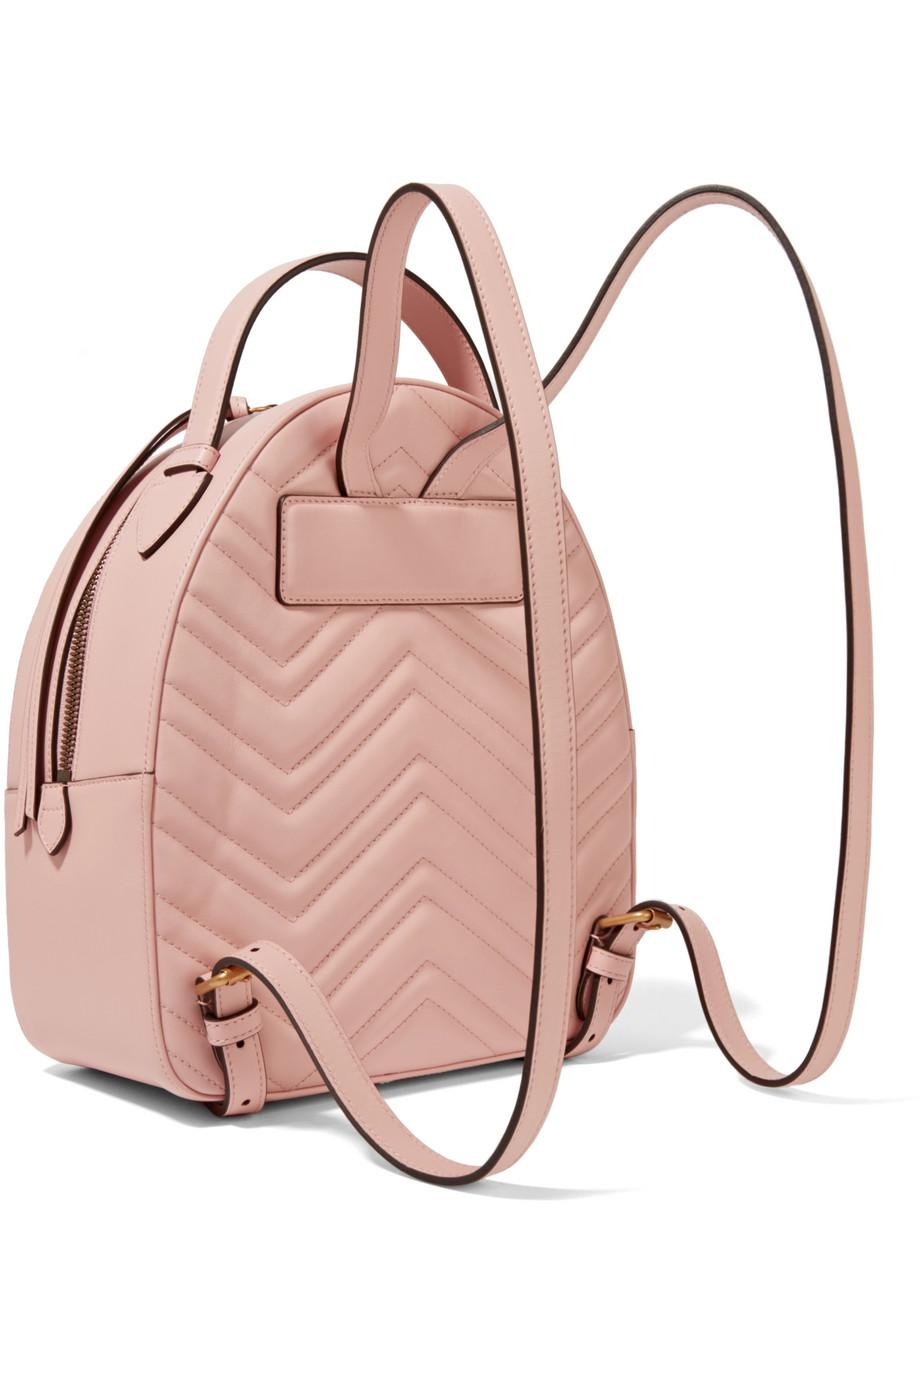 cc49cc2e1781 Lyst - Gucci Gg Marmont Quilted Leather Backpack in Pink